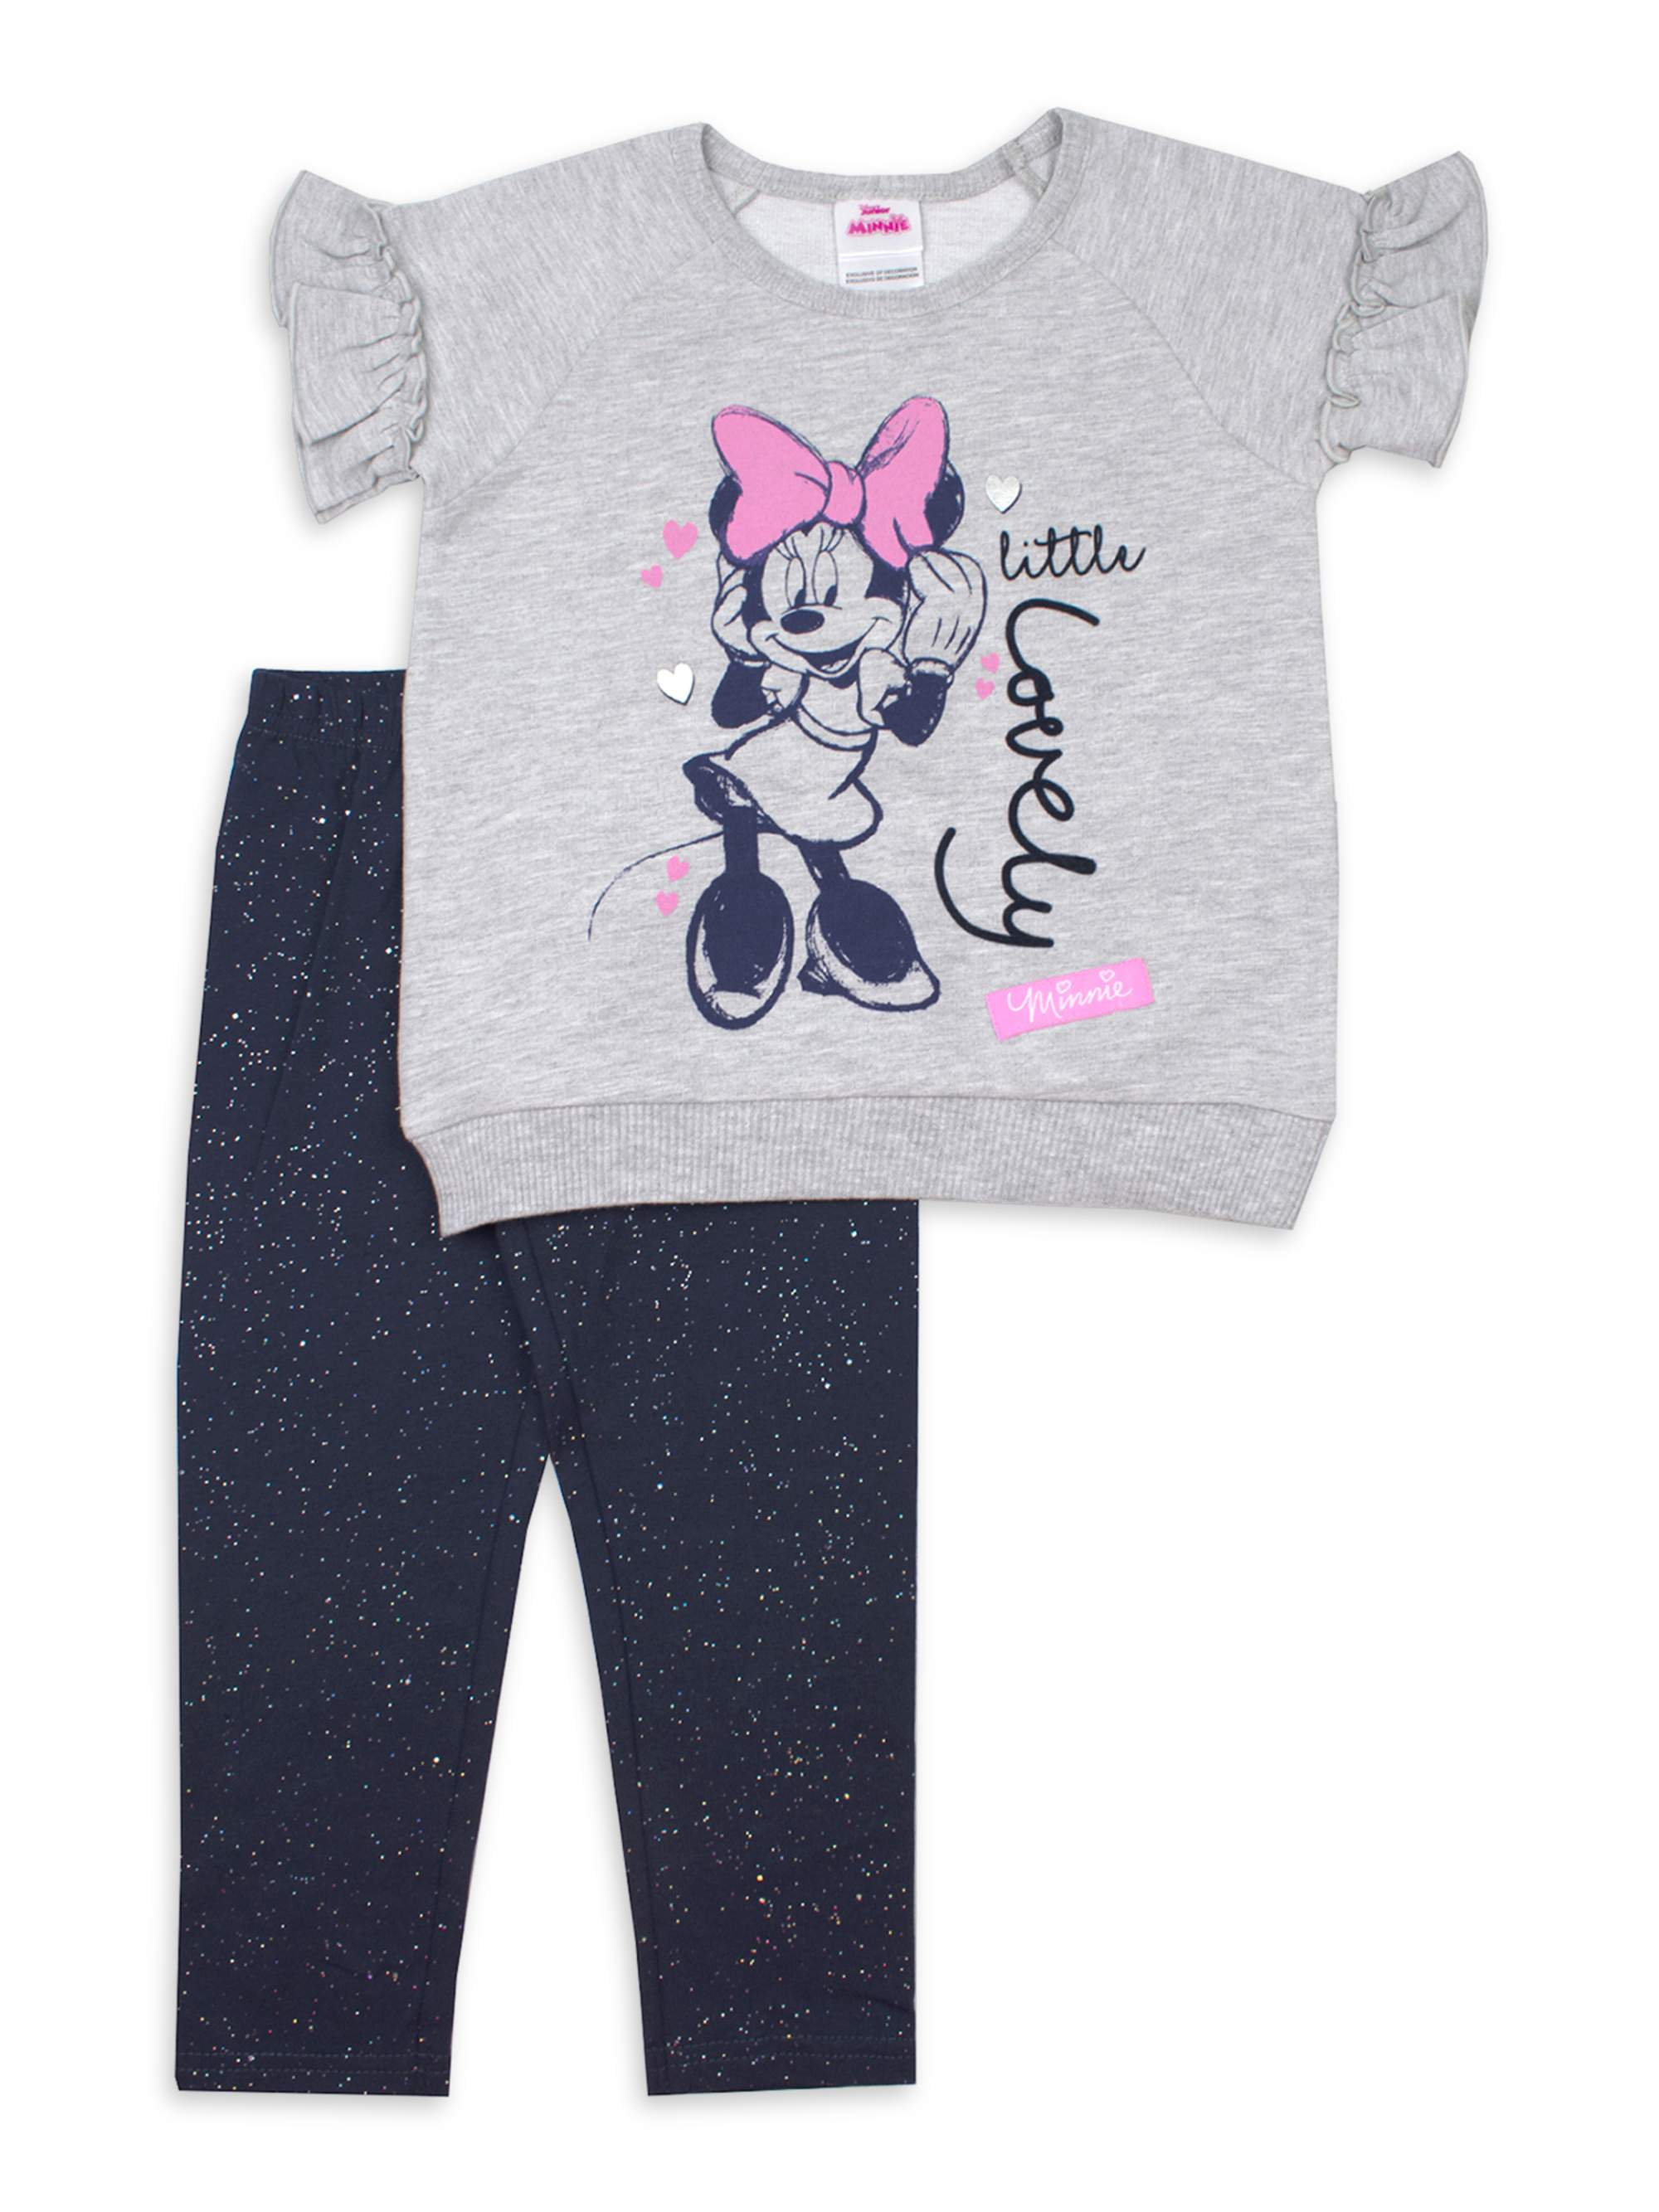 Disney Minnie Mouse Girls French Terry T-Shirt and Shorts Set